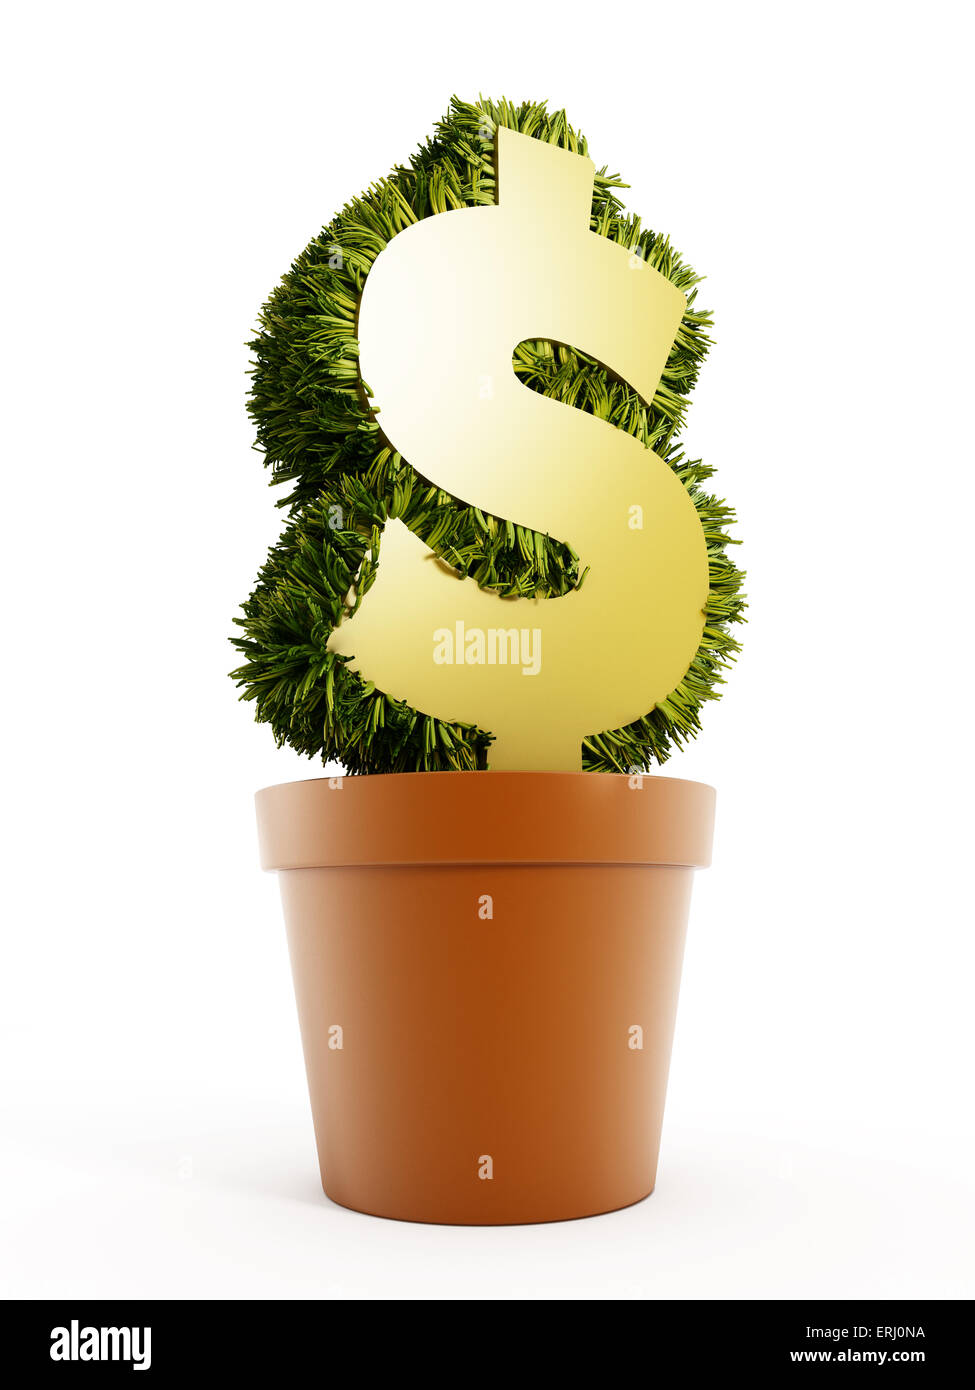 Money Plant Concept With Dollar Shape In The Pot Stock Photo